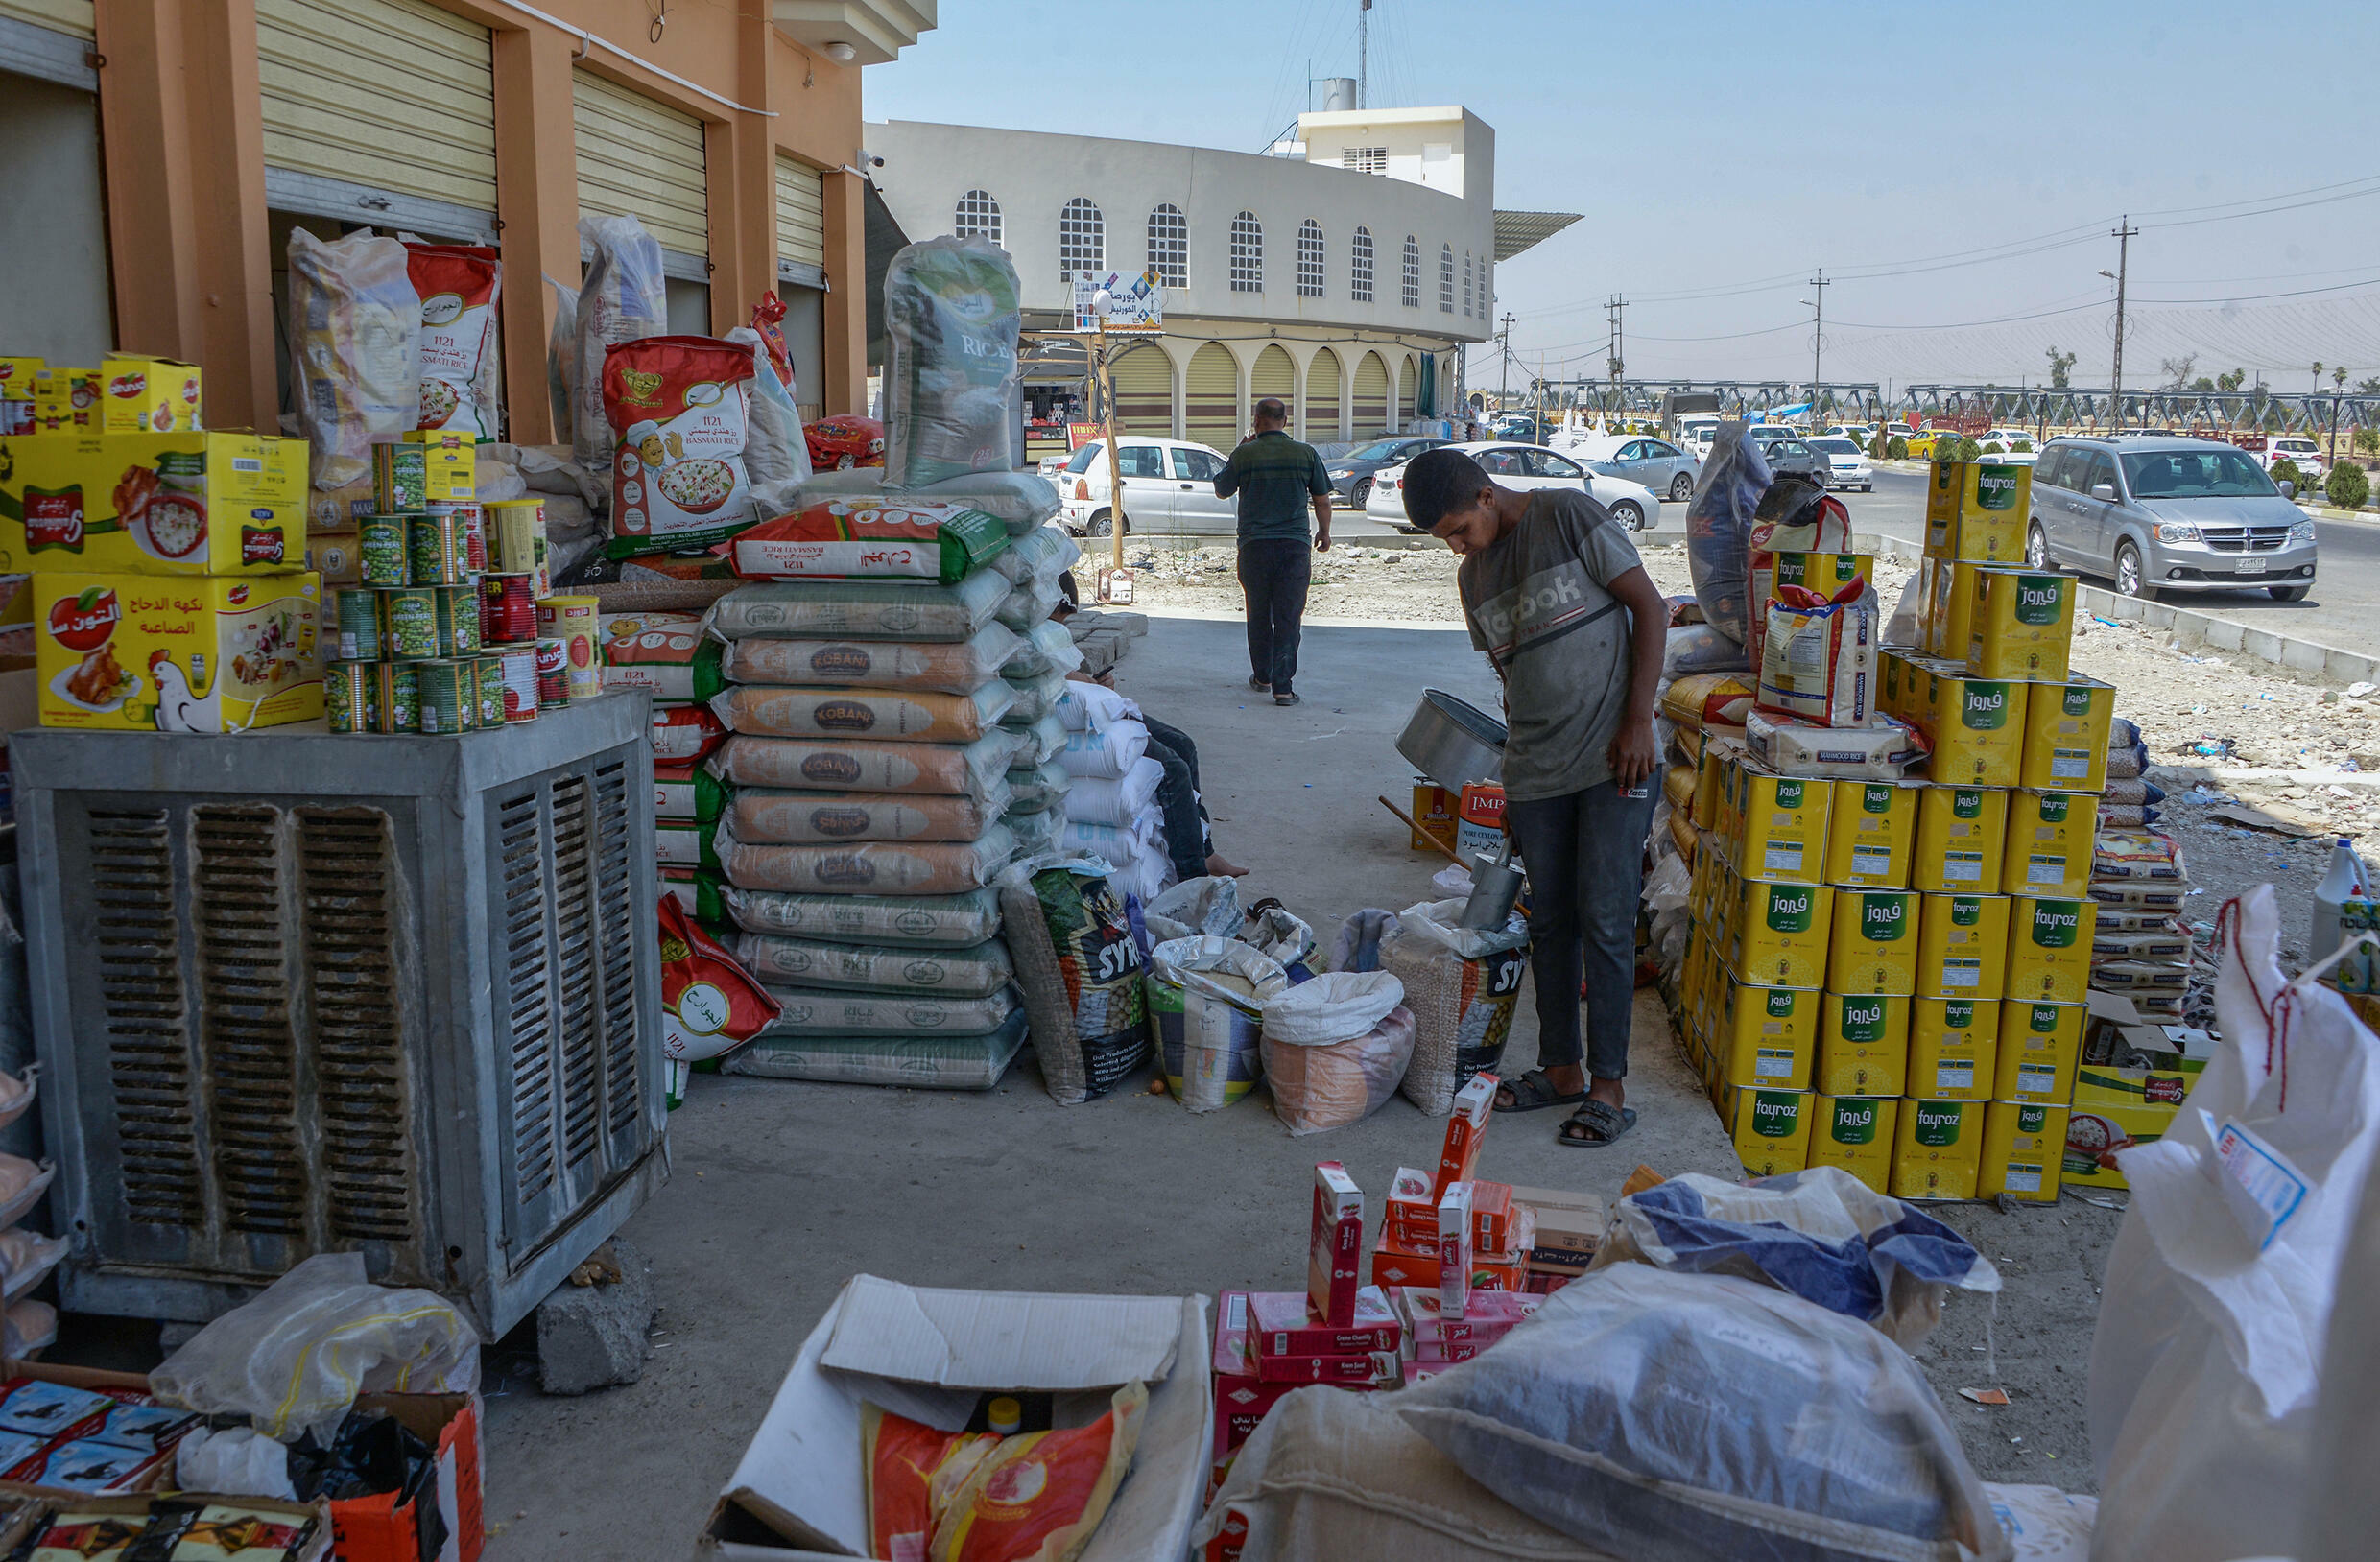 Of the 400 stalls that once crowded the Corniche market, only a tenth has resumed operations, according to a trader